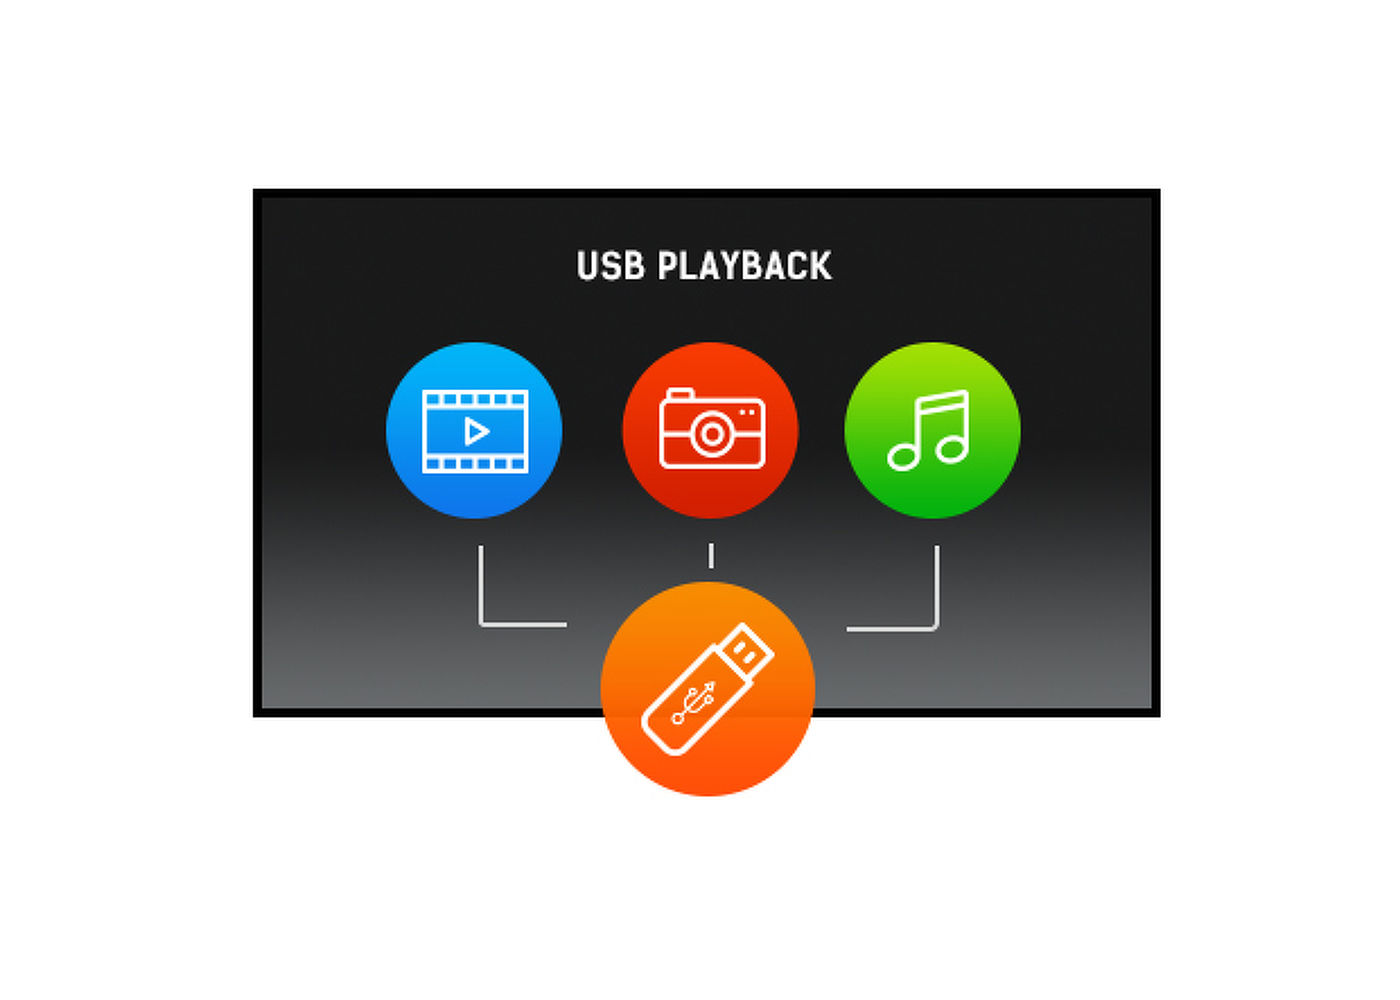 Playback USB